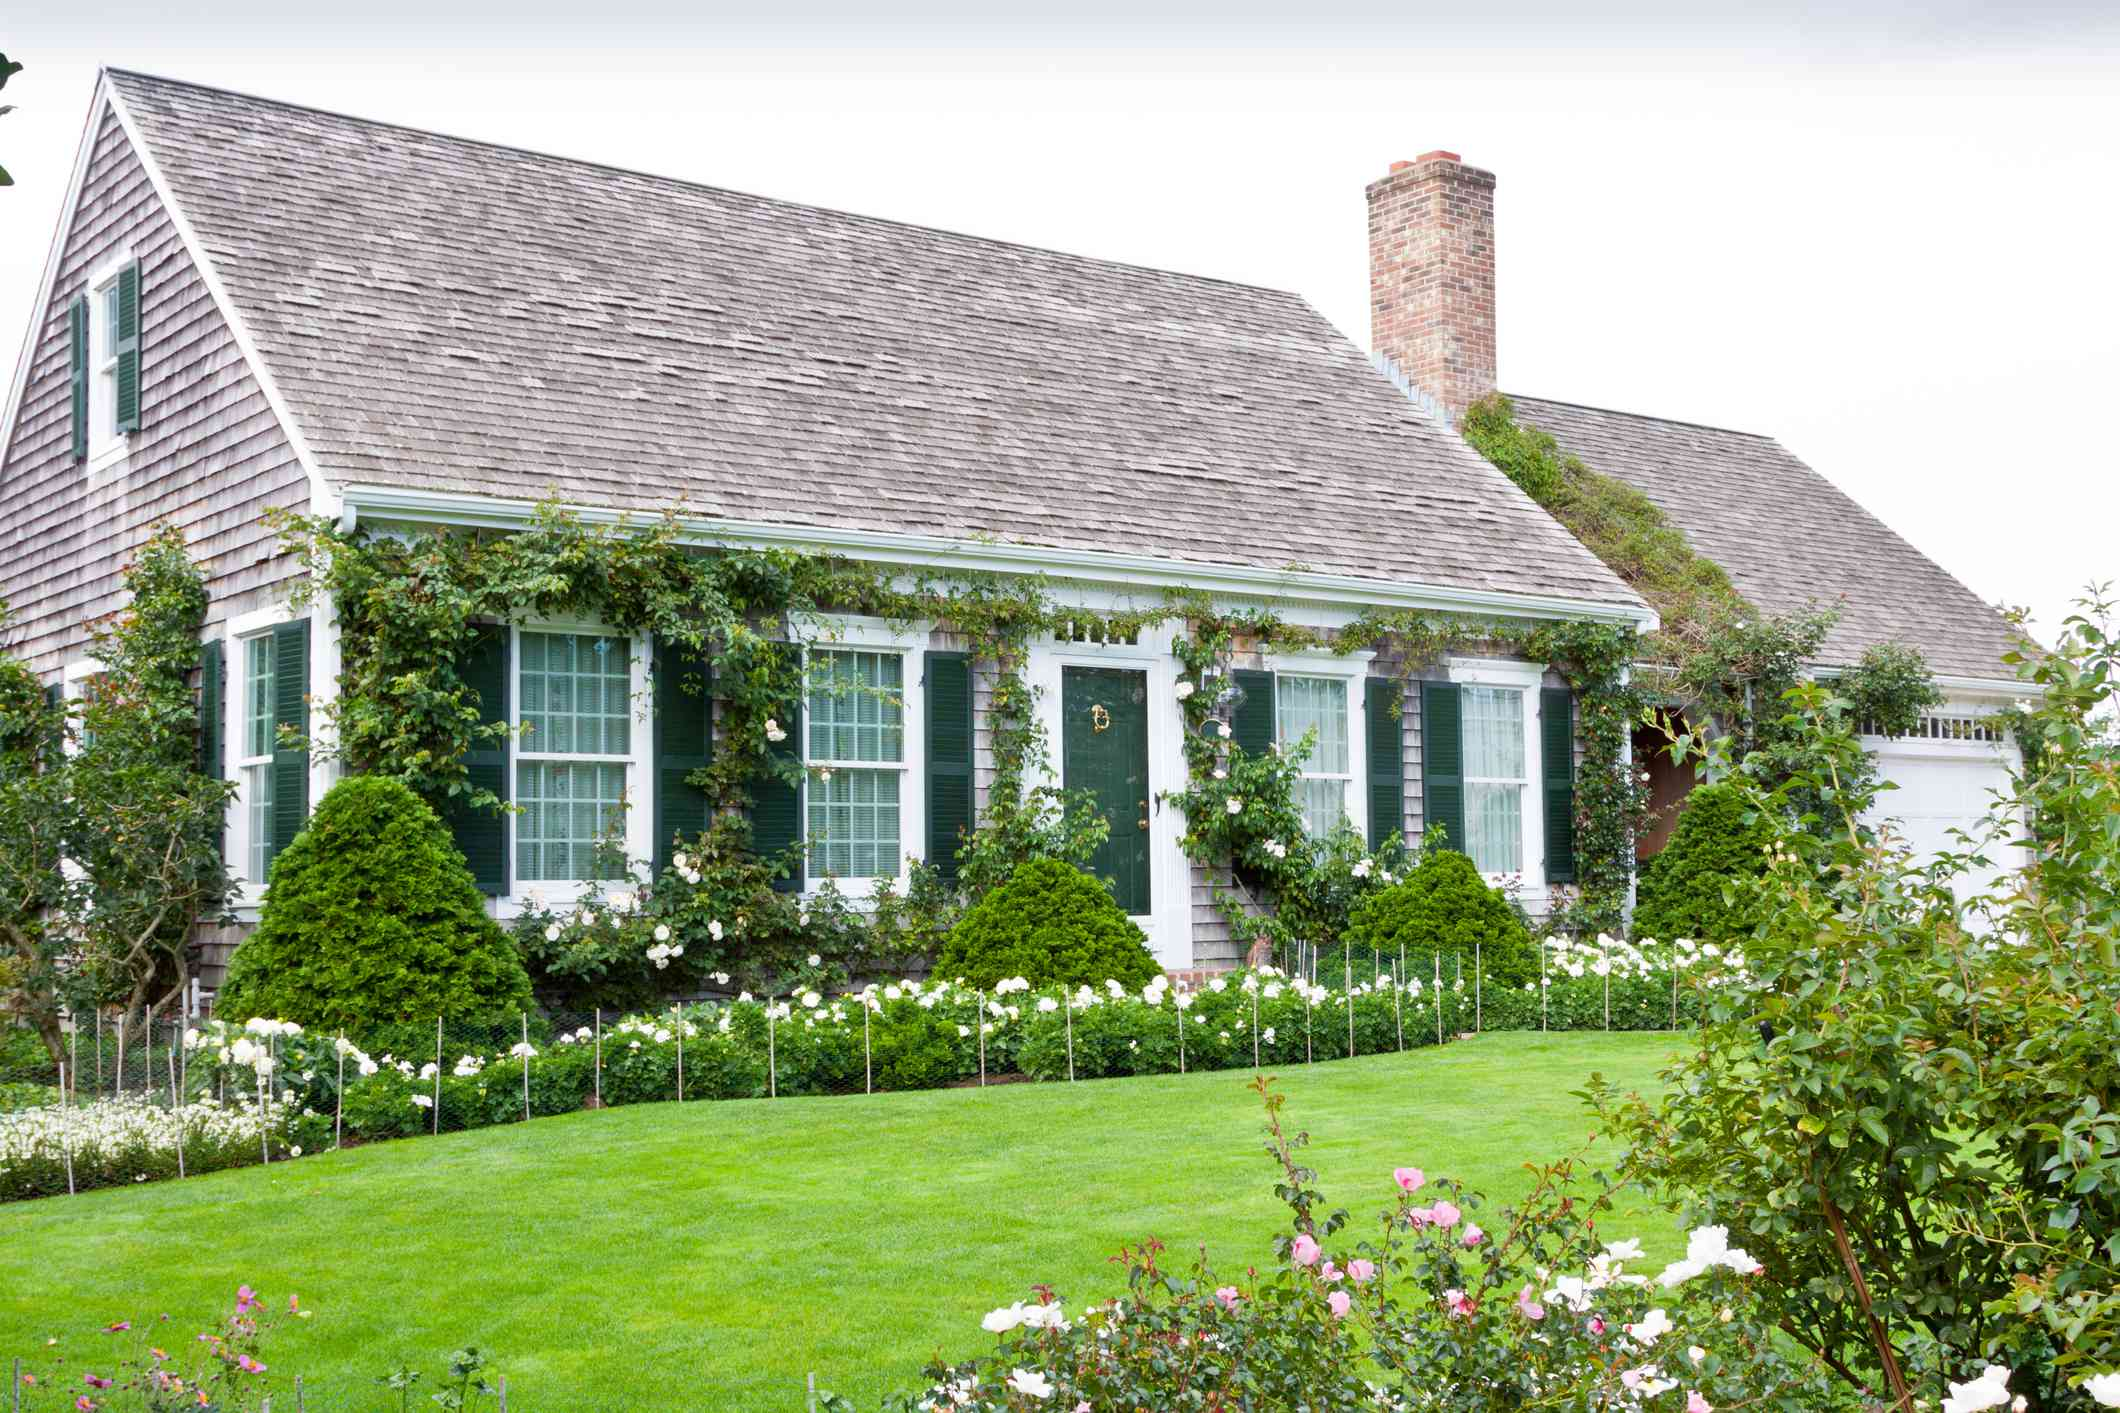 Cape Cod house in Chatham, Mass.